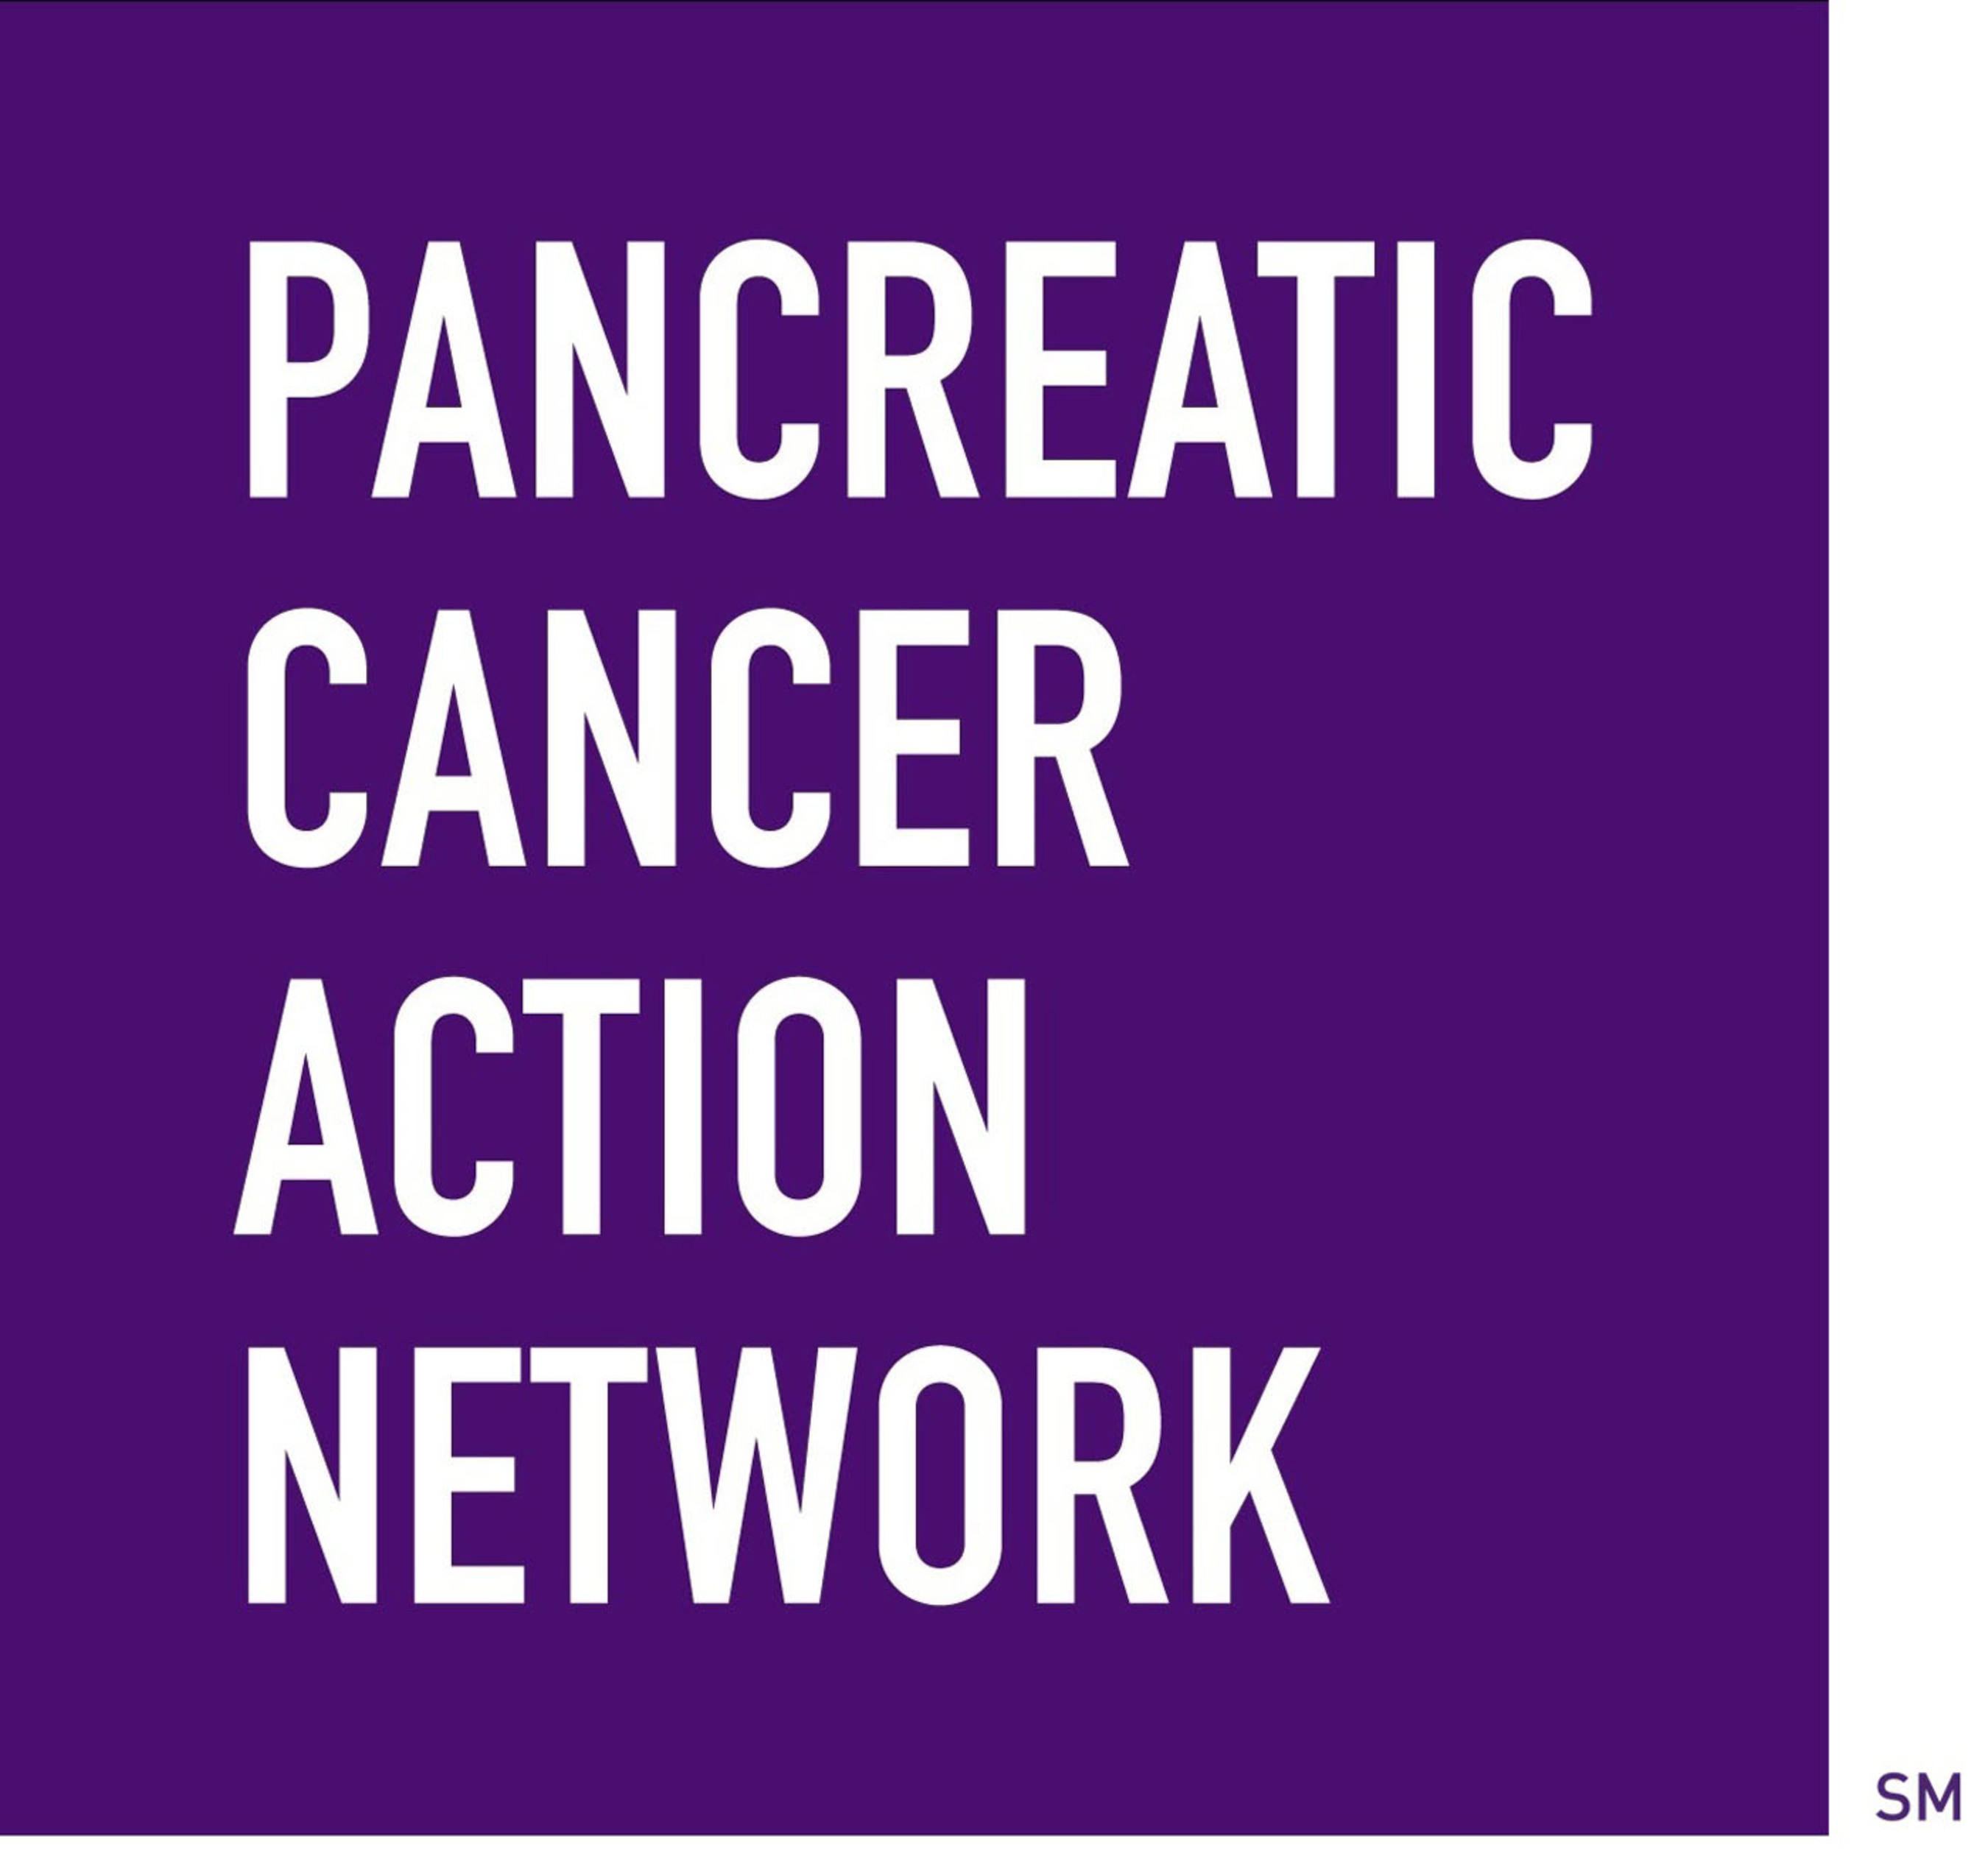 Pancreatic Cancer Action Network logo.